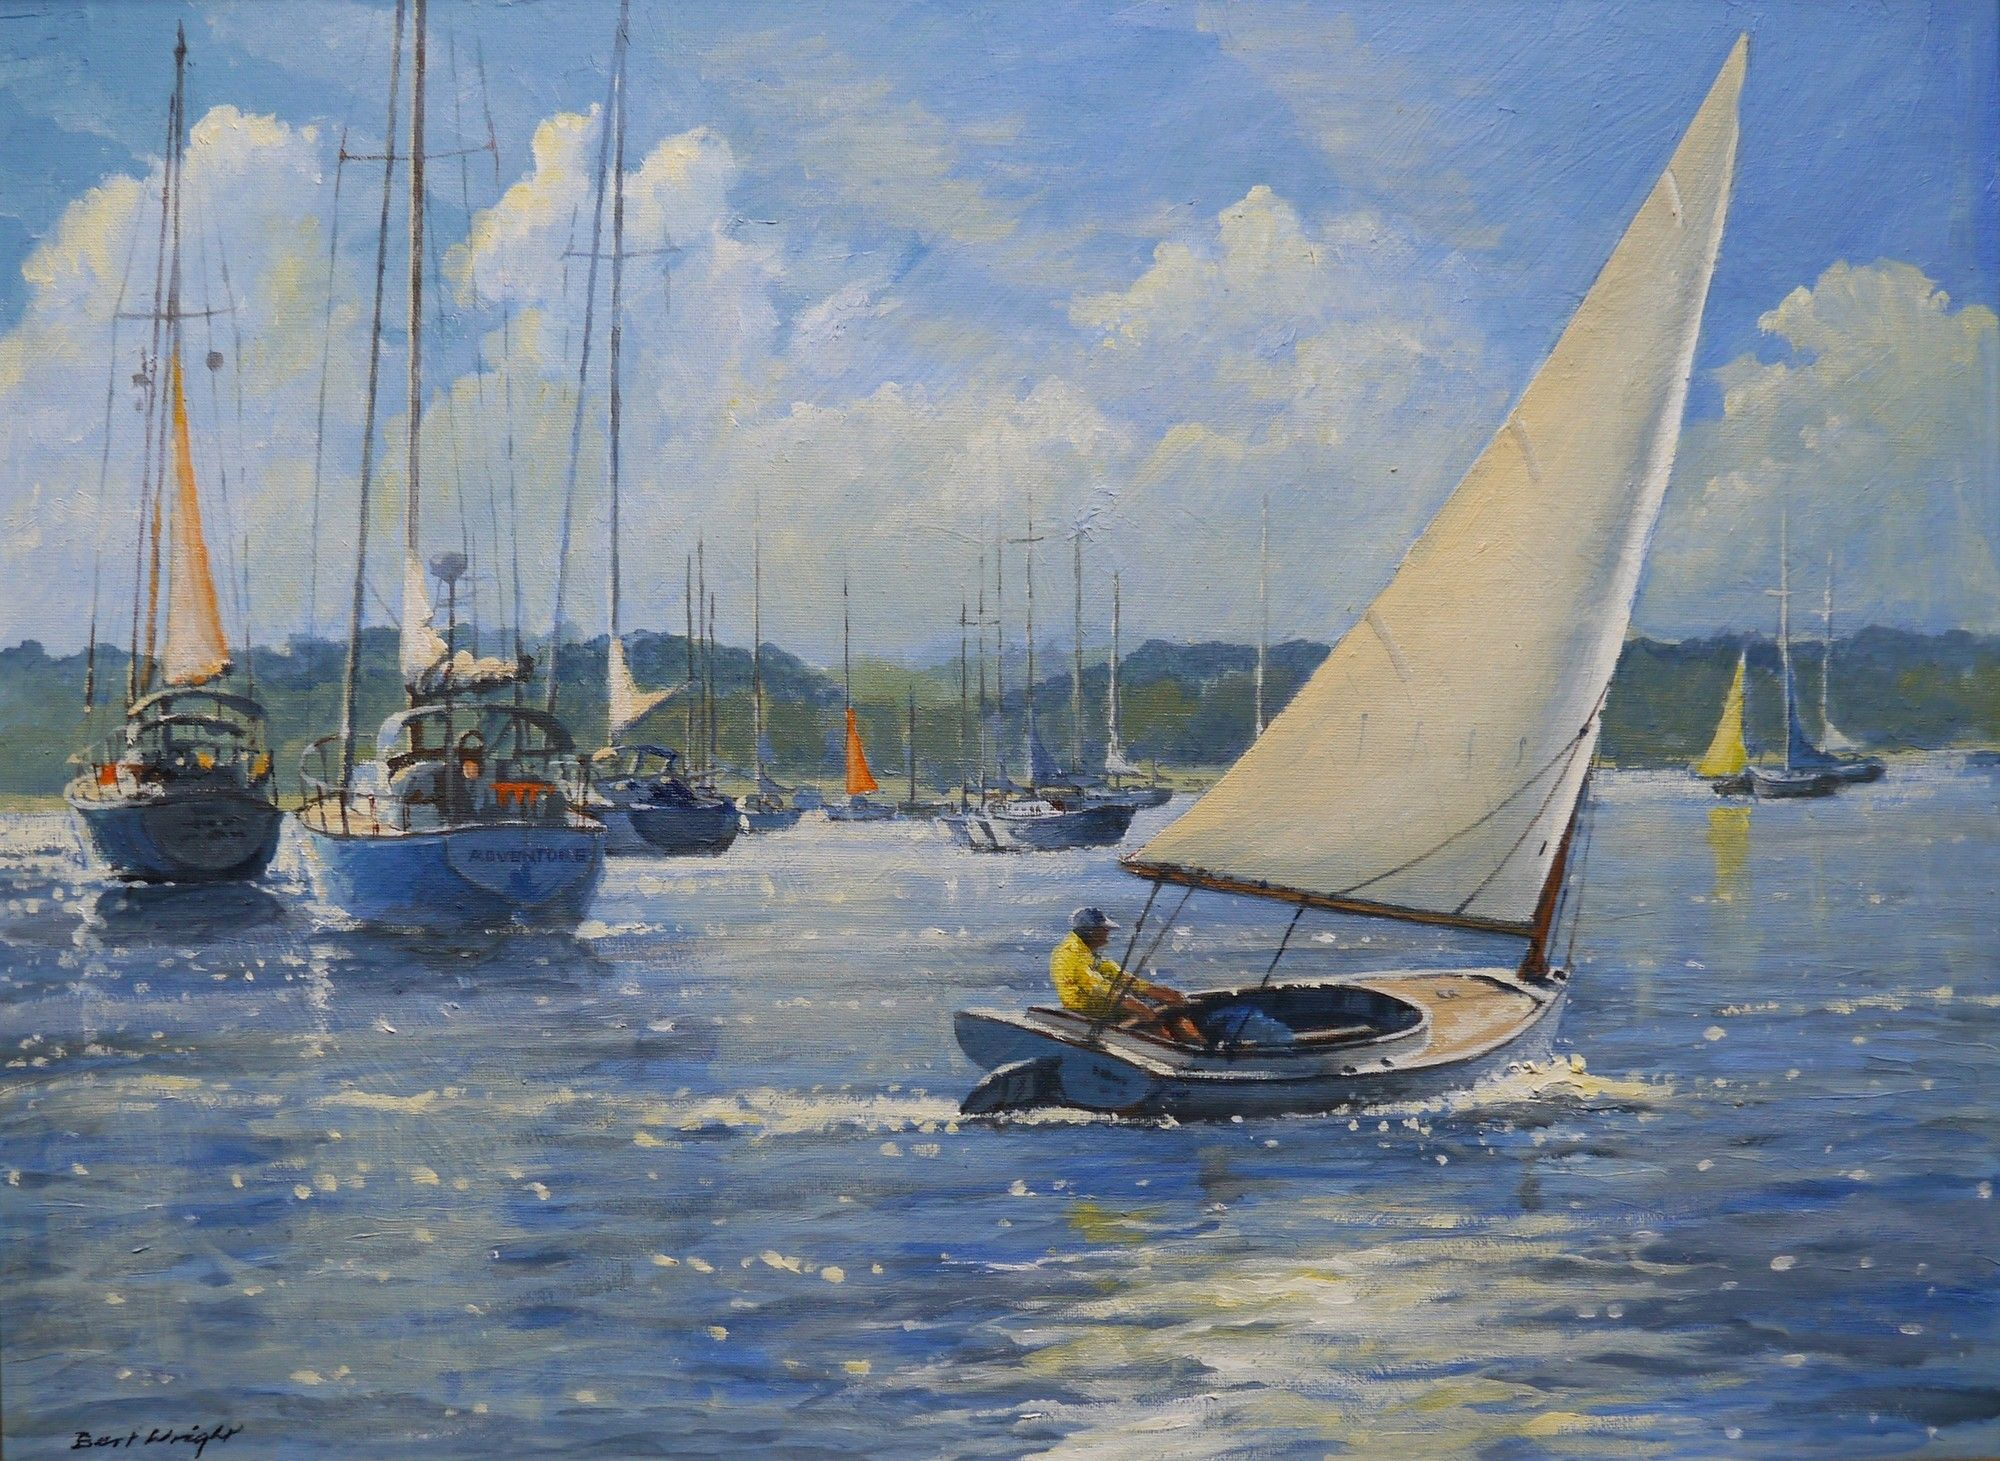 Perfect Sailing by Bert Wright Copyright remains with the artist ...